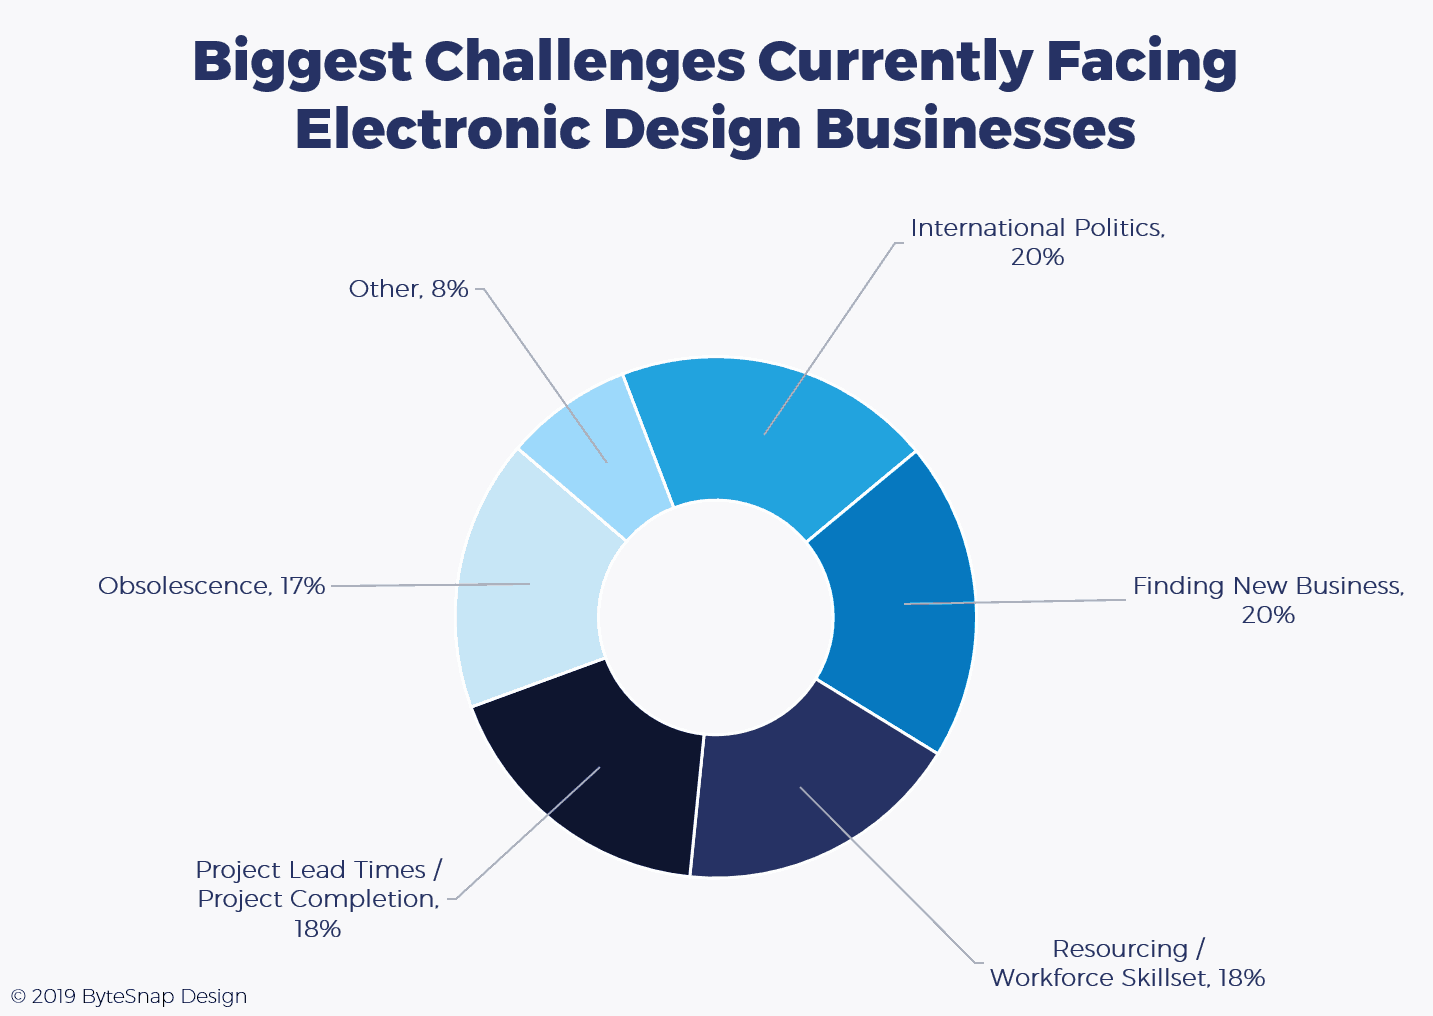 Survey: Biggest challenges faced by electronic design businesses into 2020